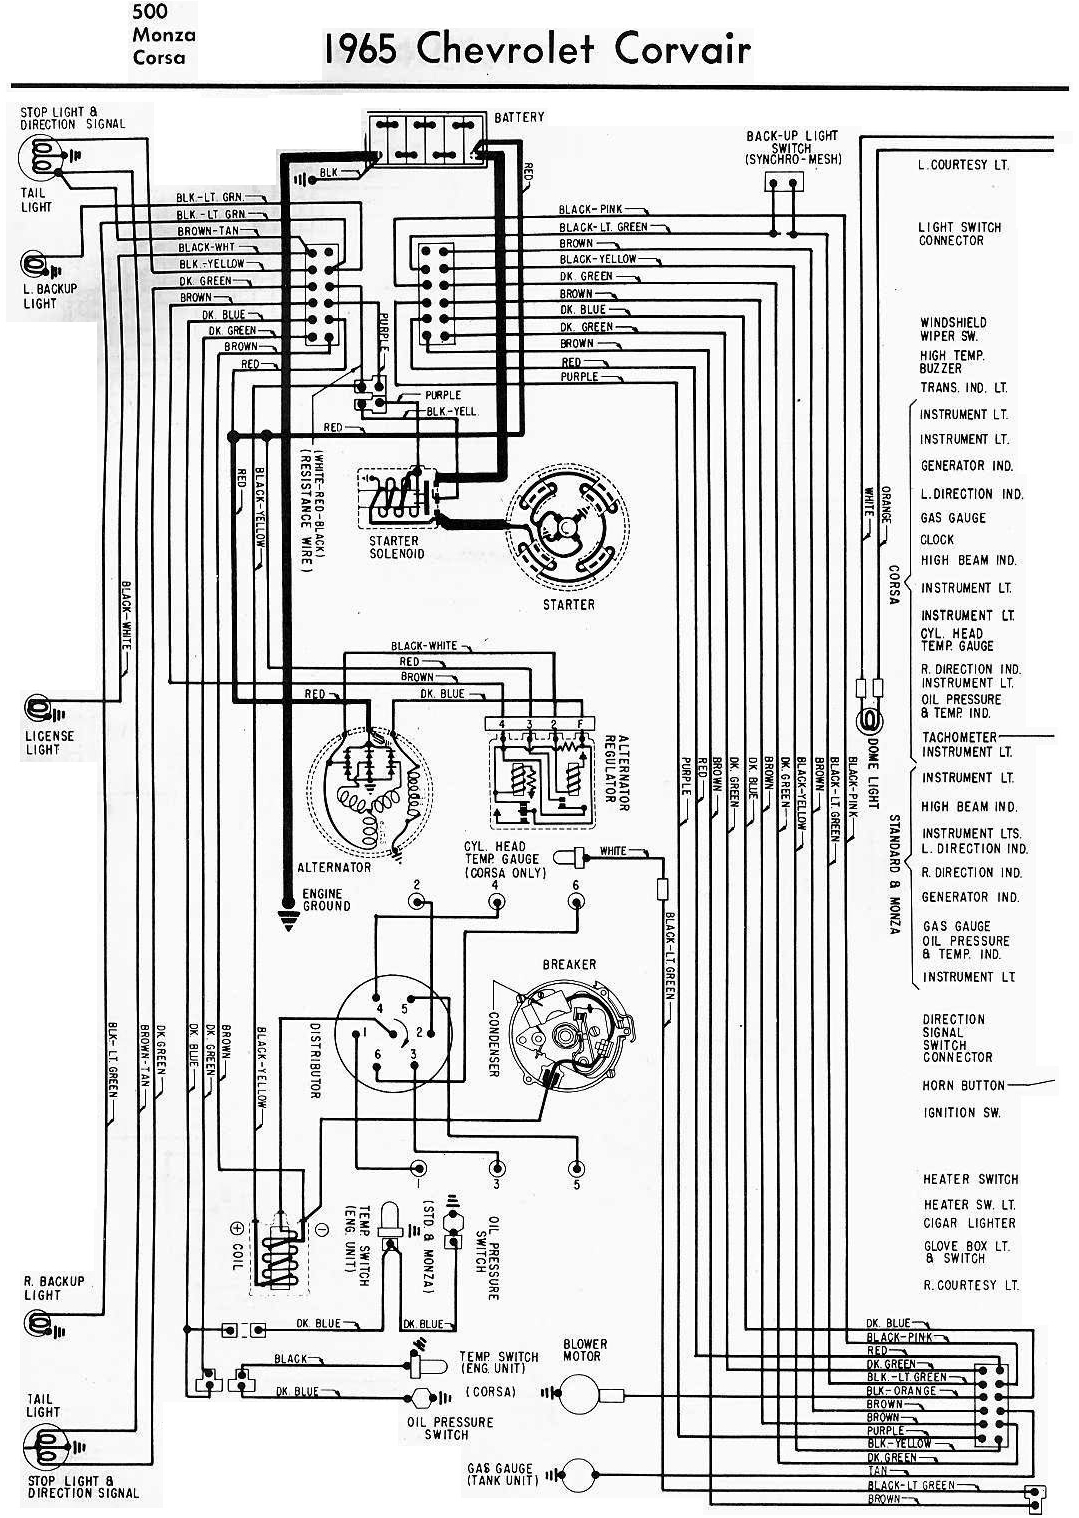 1965 chevrolet corvair electrical wiring diagram all about 1965 chevrolet corvair electrical wiring diagram